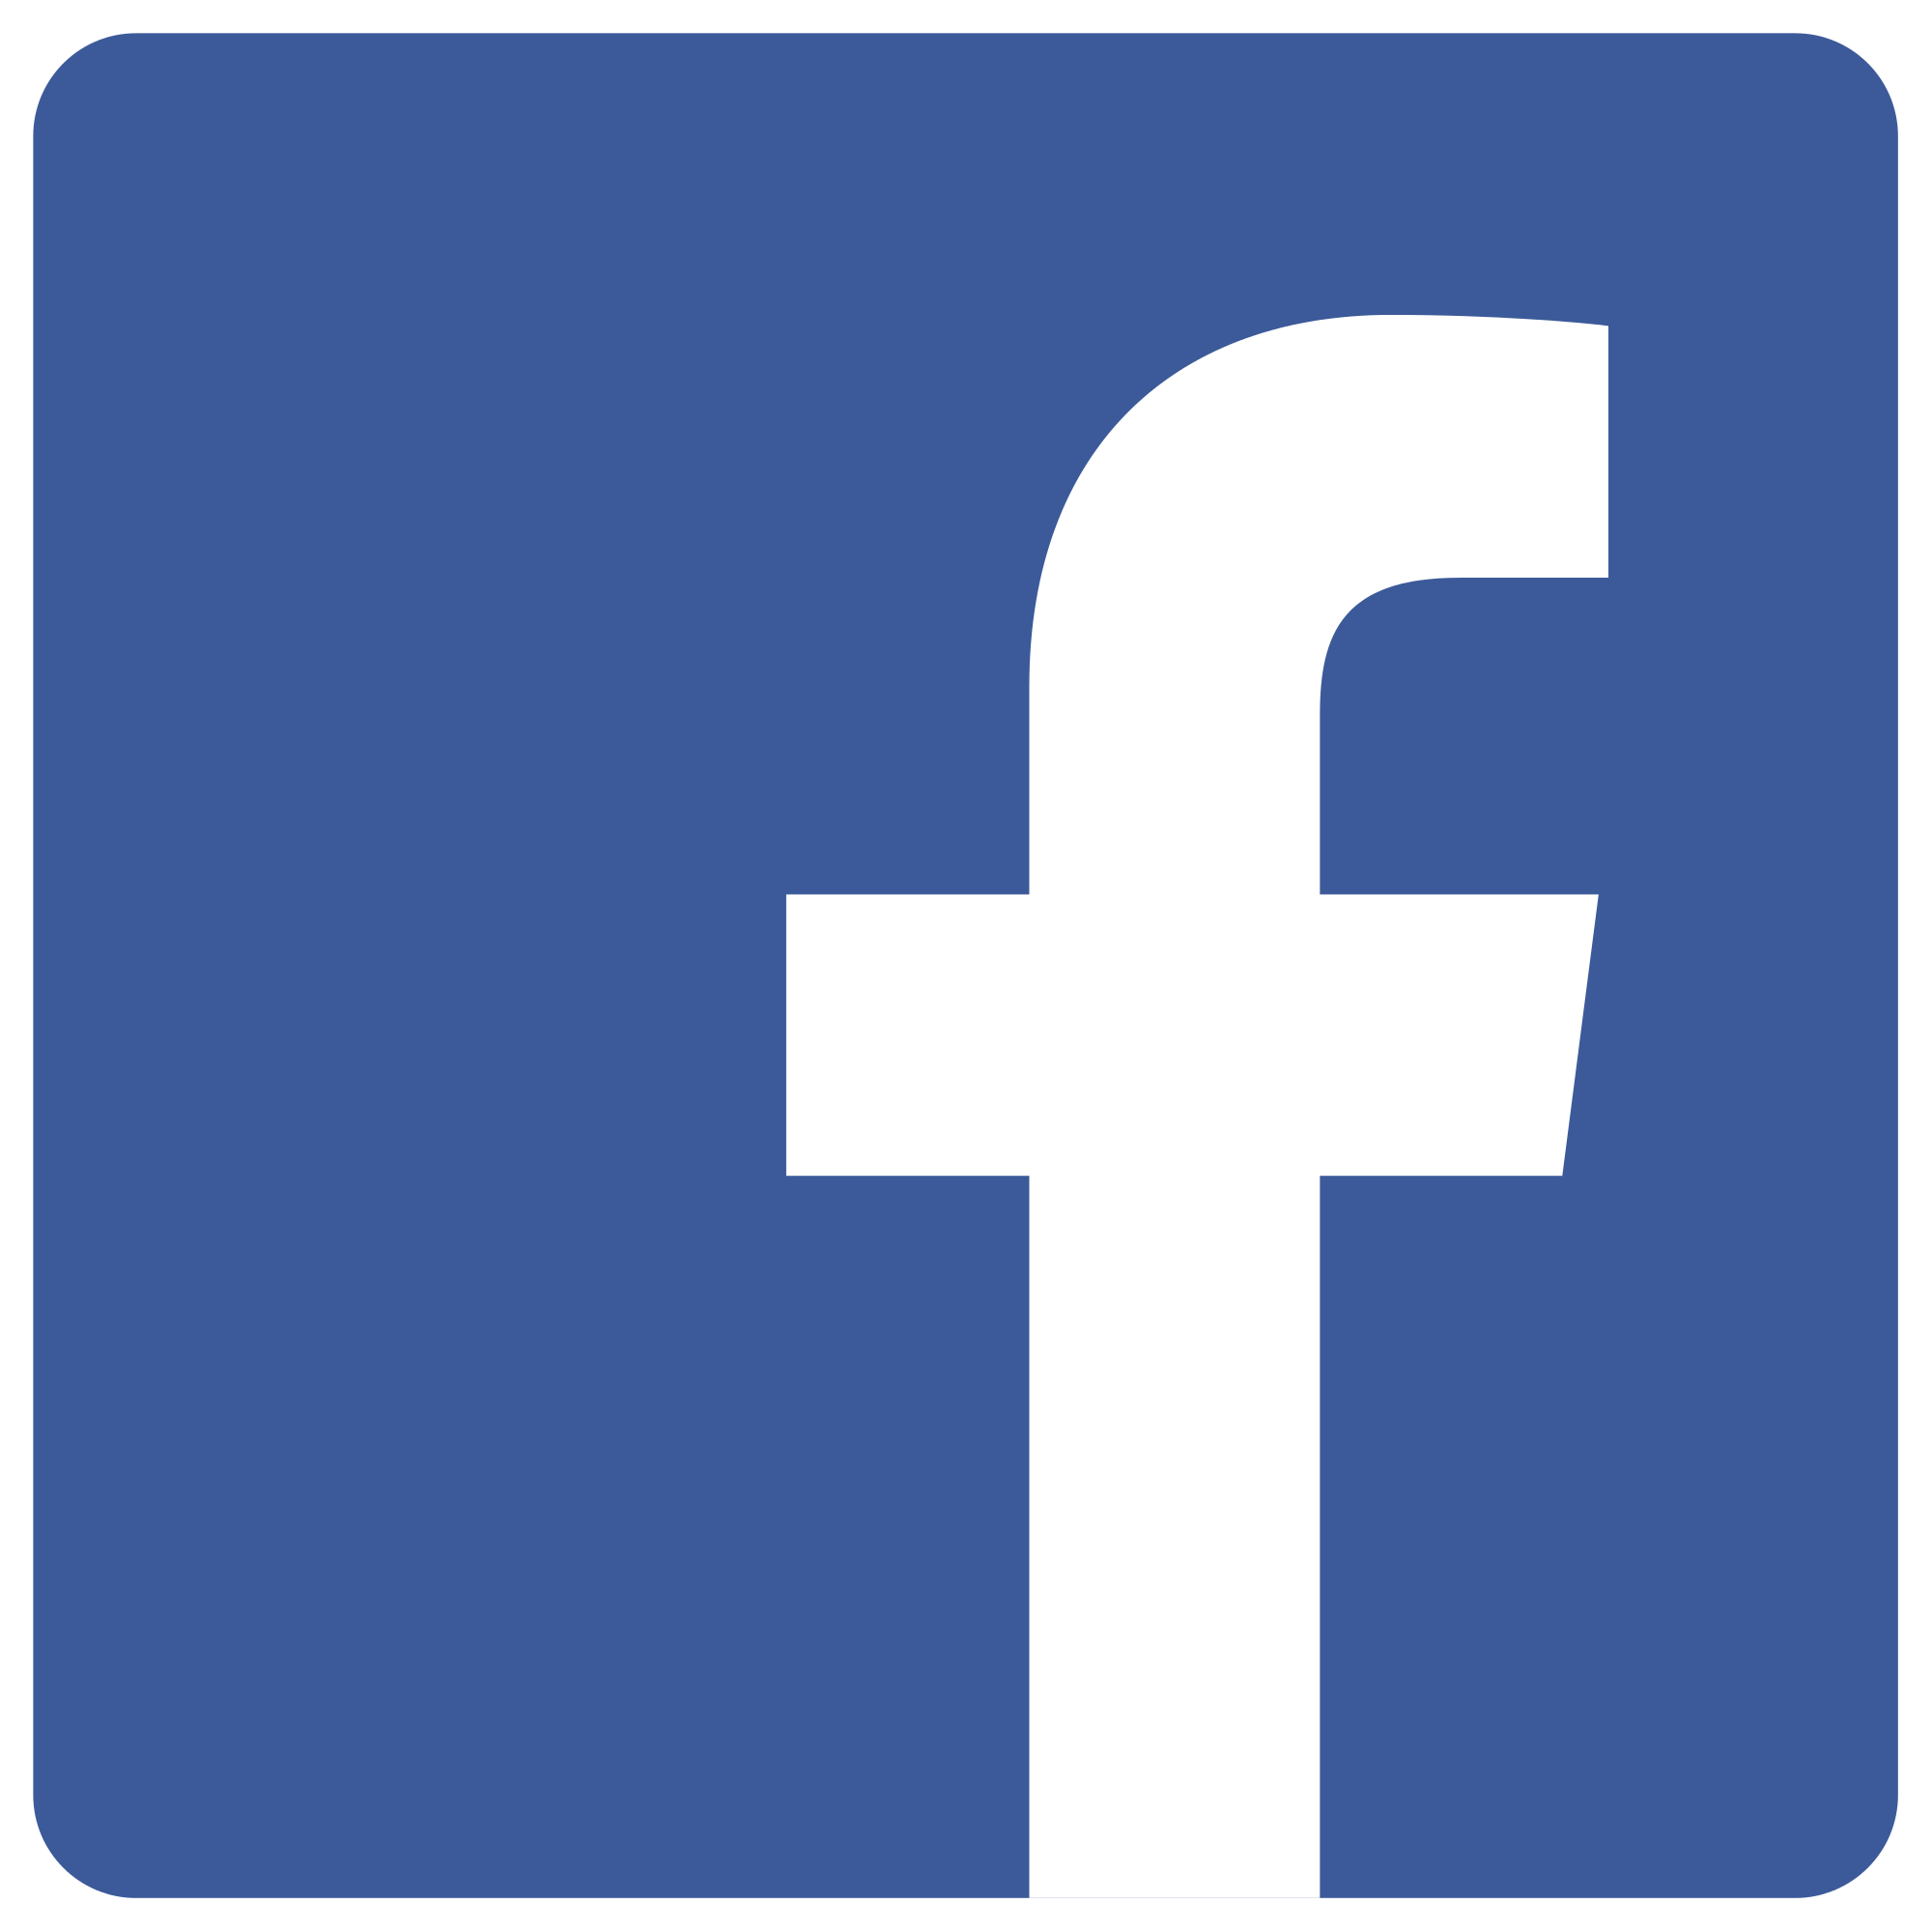 facebook-icon-transparent-background-3.png